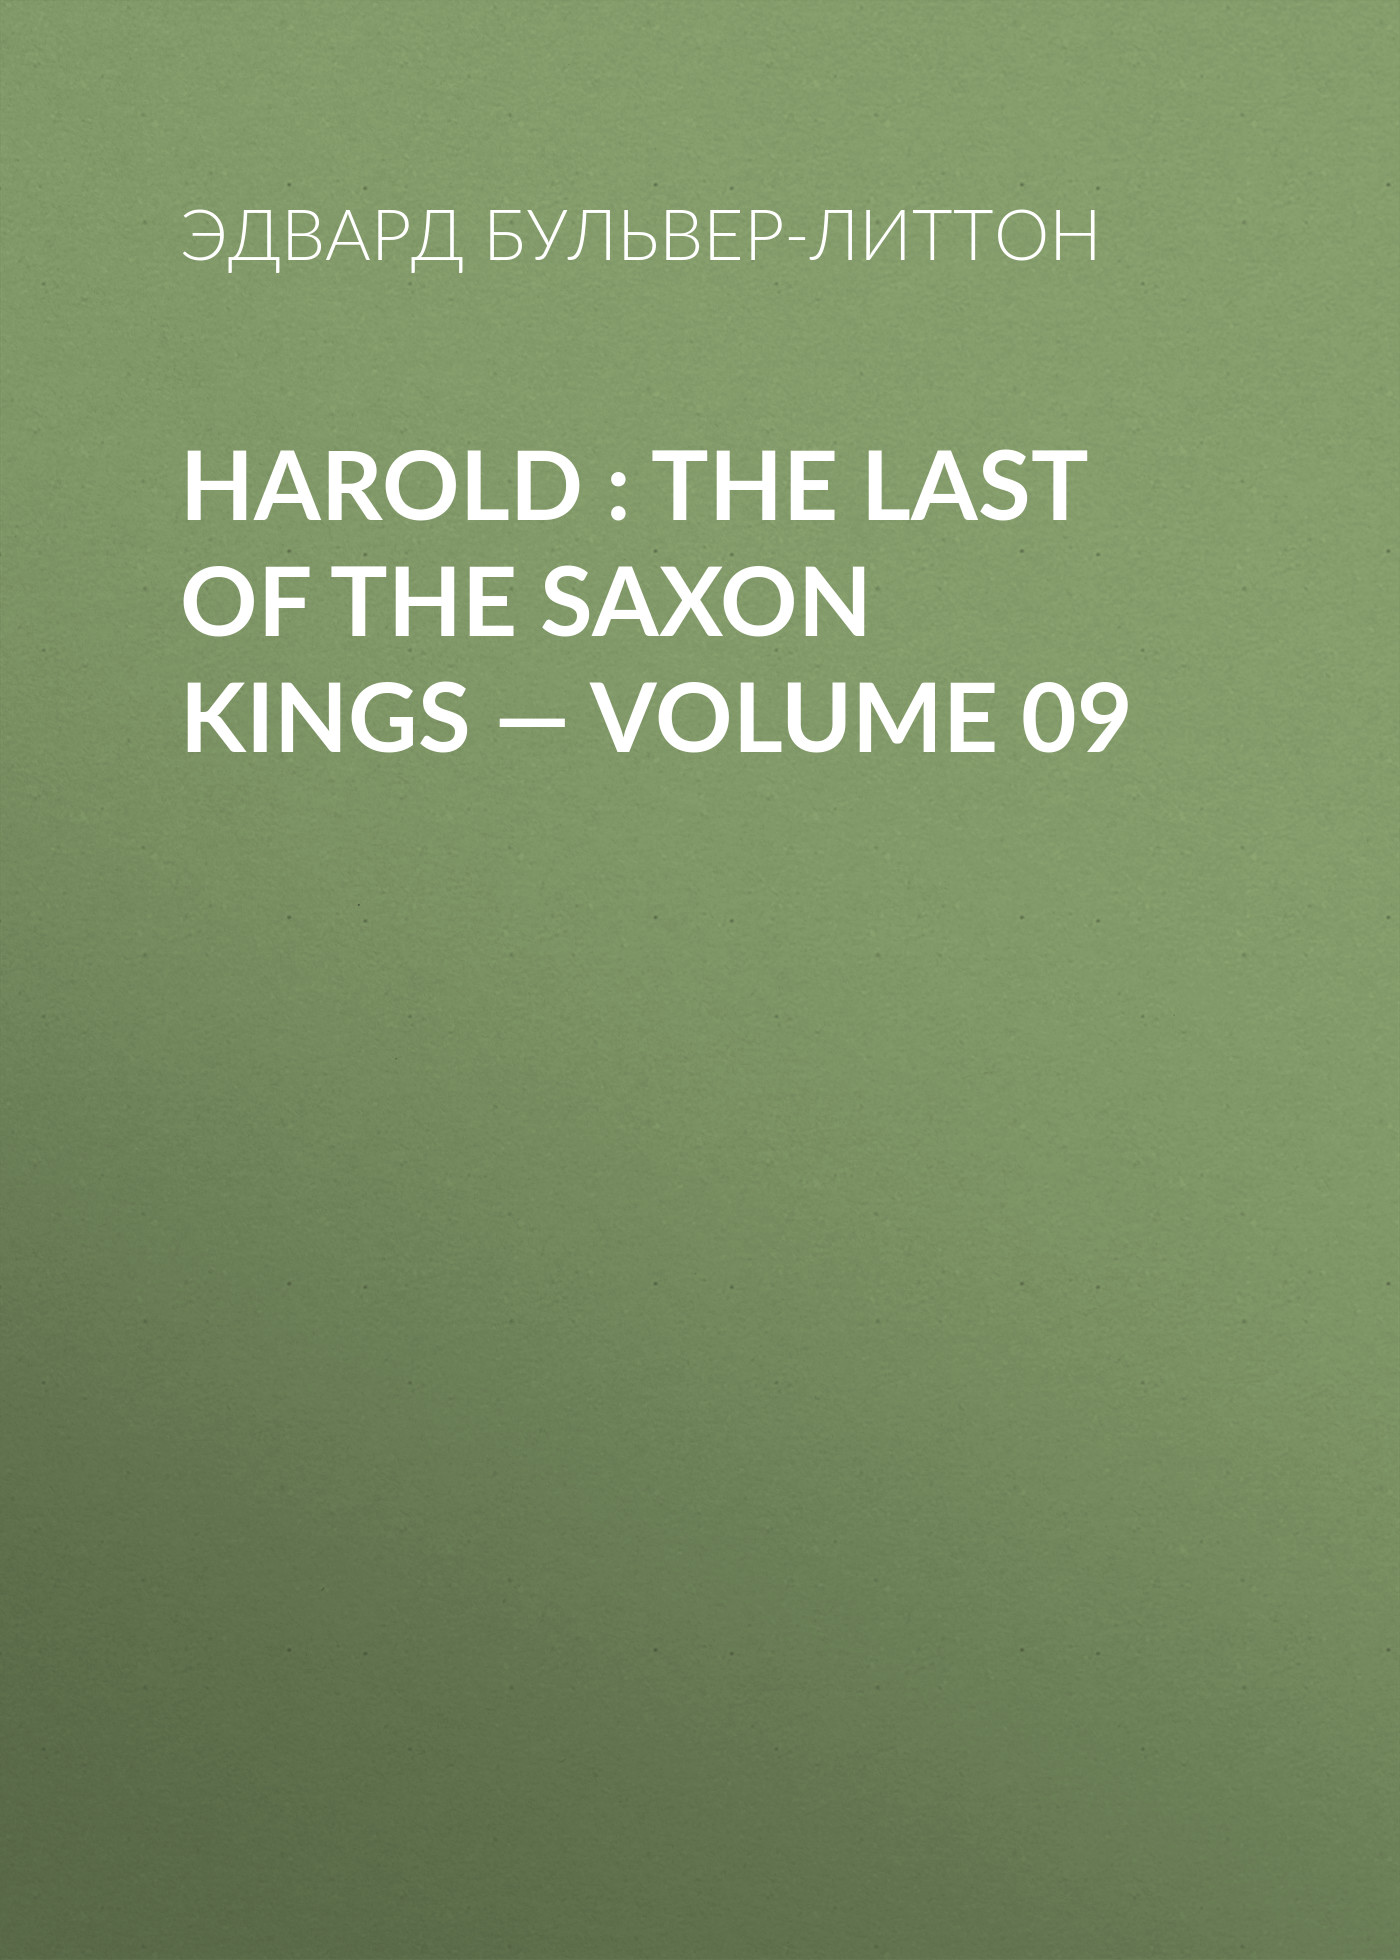 Эдвард Бульвер-Литтон Harold : the Last of the Saxon Kings — Volume 09 эдвард бульвер литтон harold the last of the saxon kings volume 06